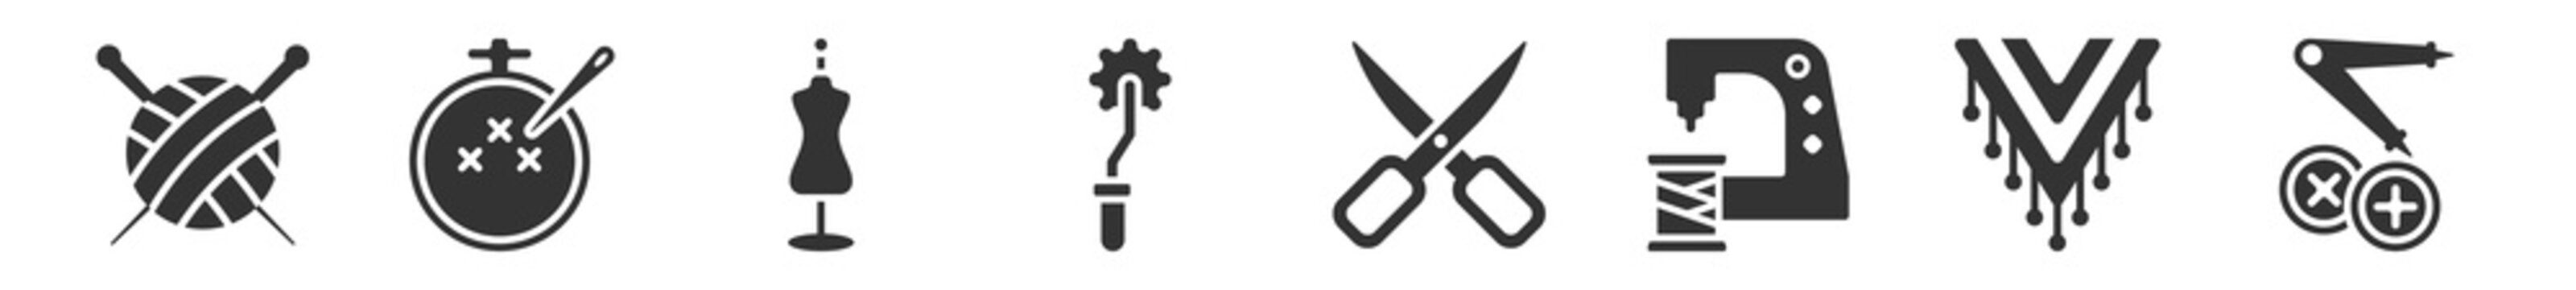 filled set of sew icons. glyph vector icons such as knitting neddles, embroidery, mannequin, overstitch, sewing scissors, sewing craft. vector illustration.